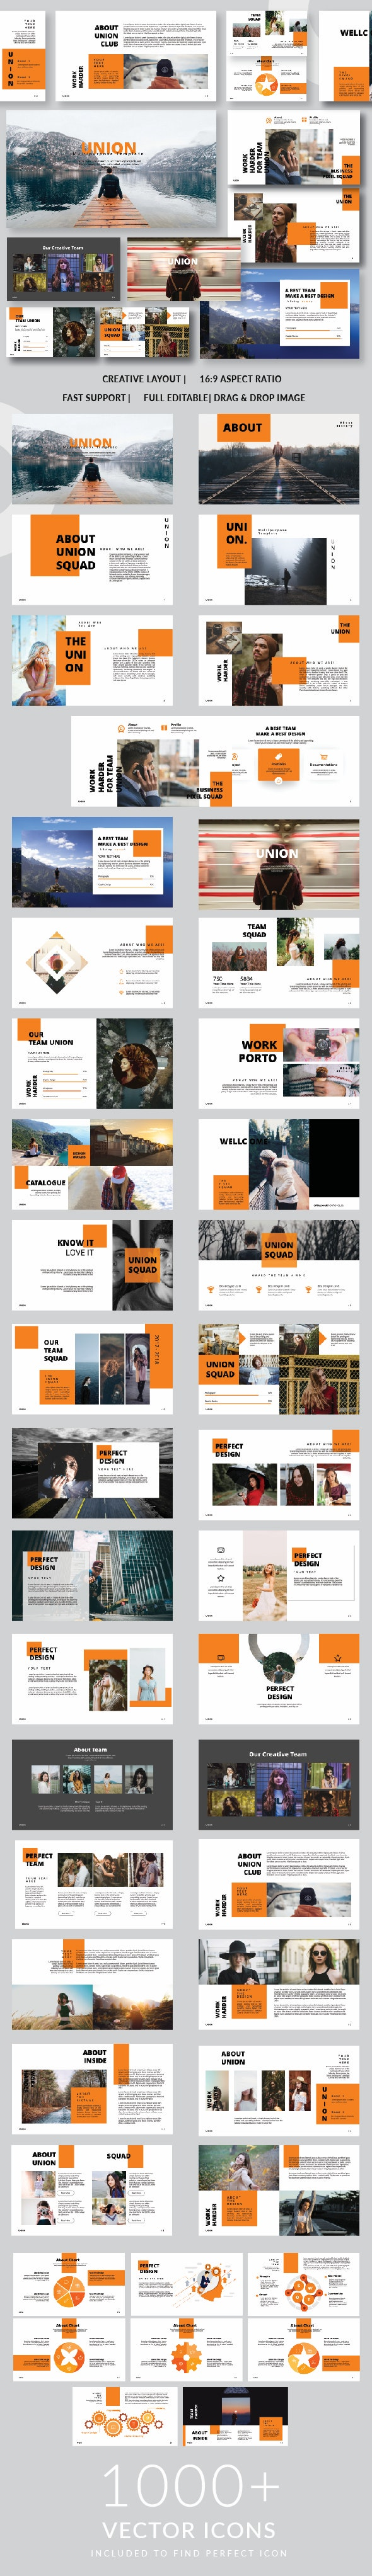 UNION Google Slide Template - PowerPoint Templates Presentation Templates